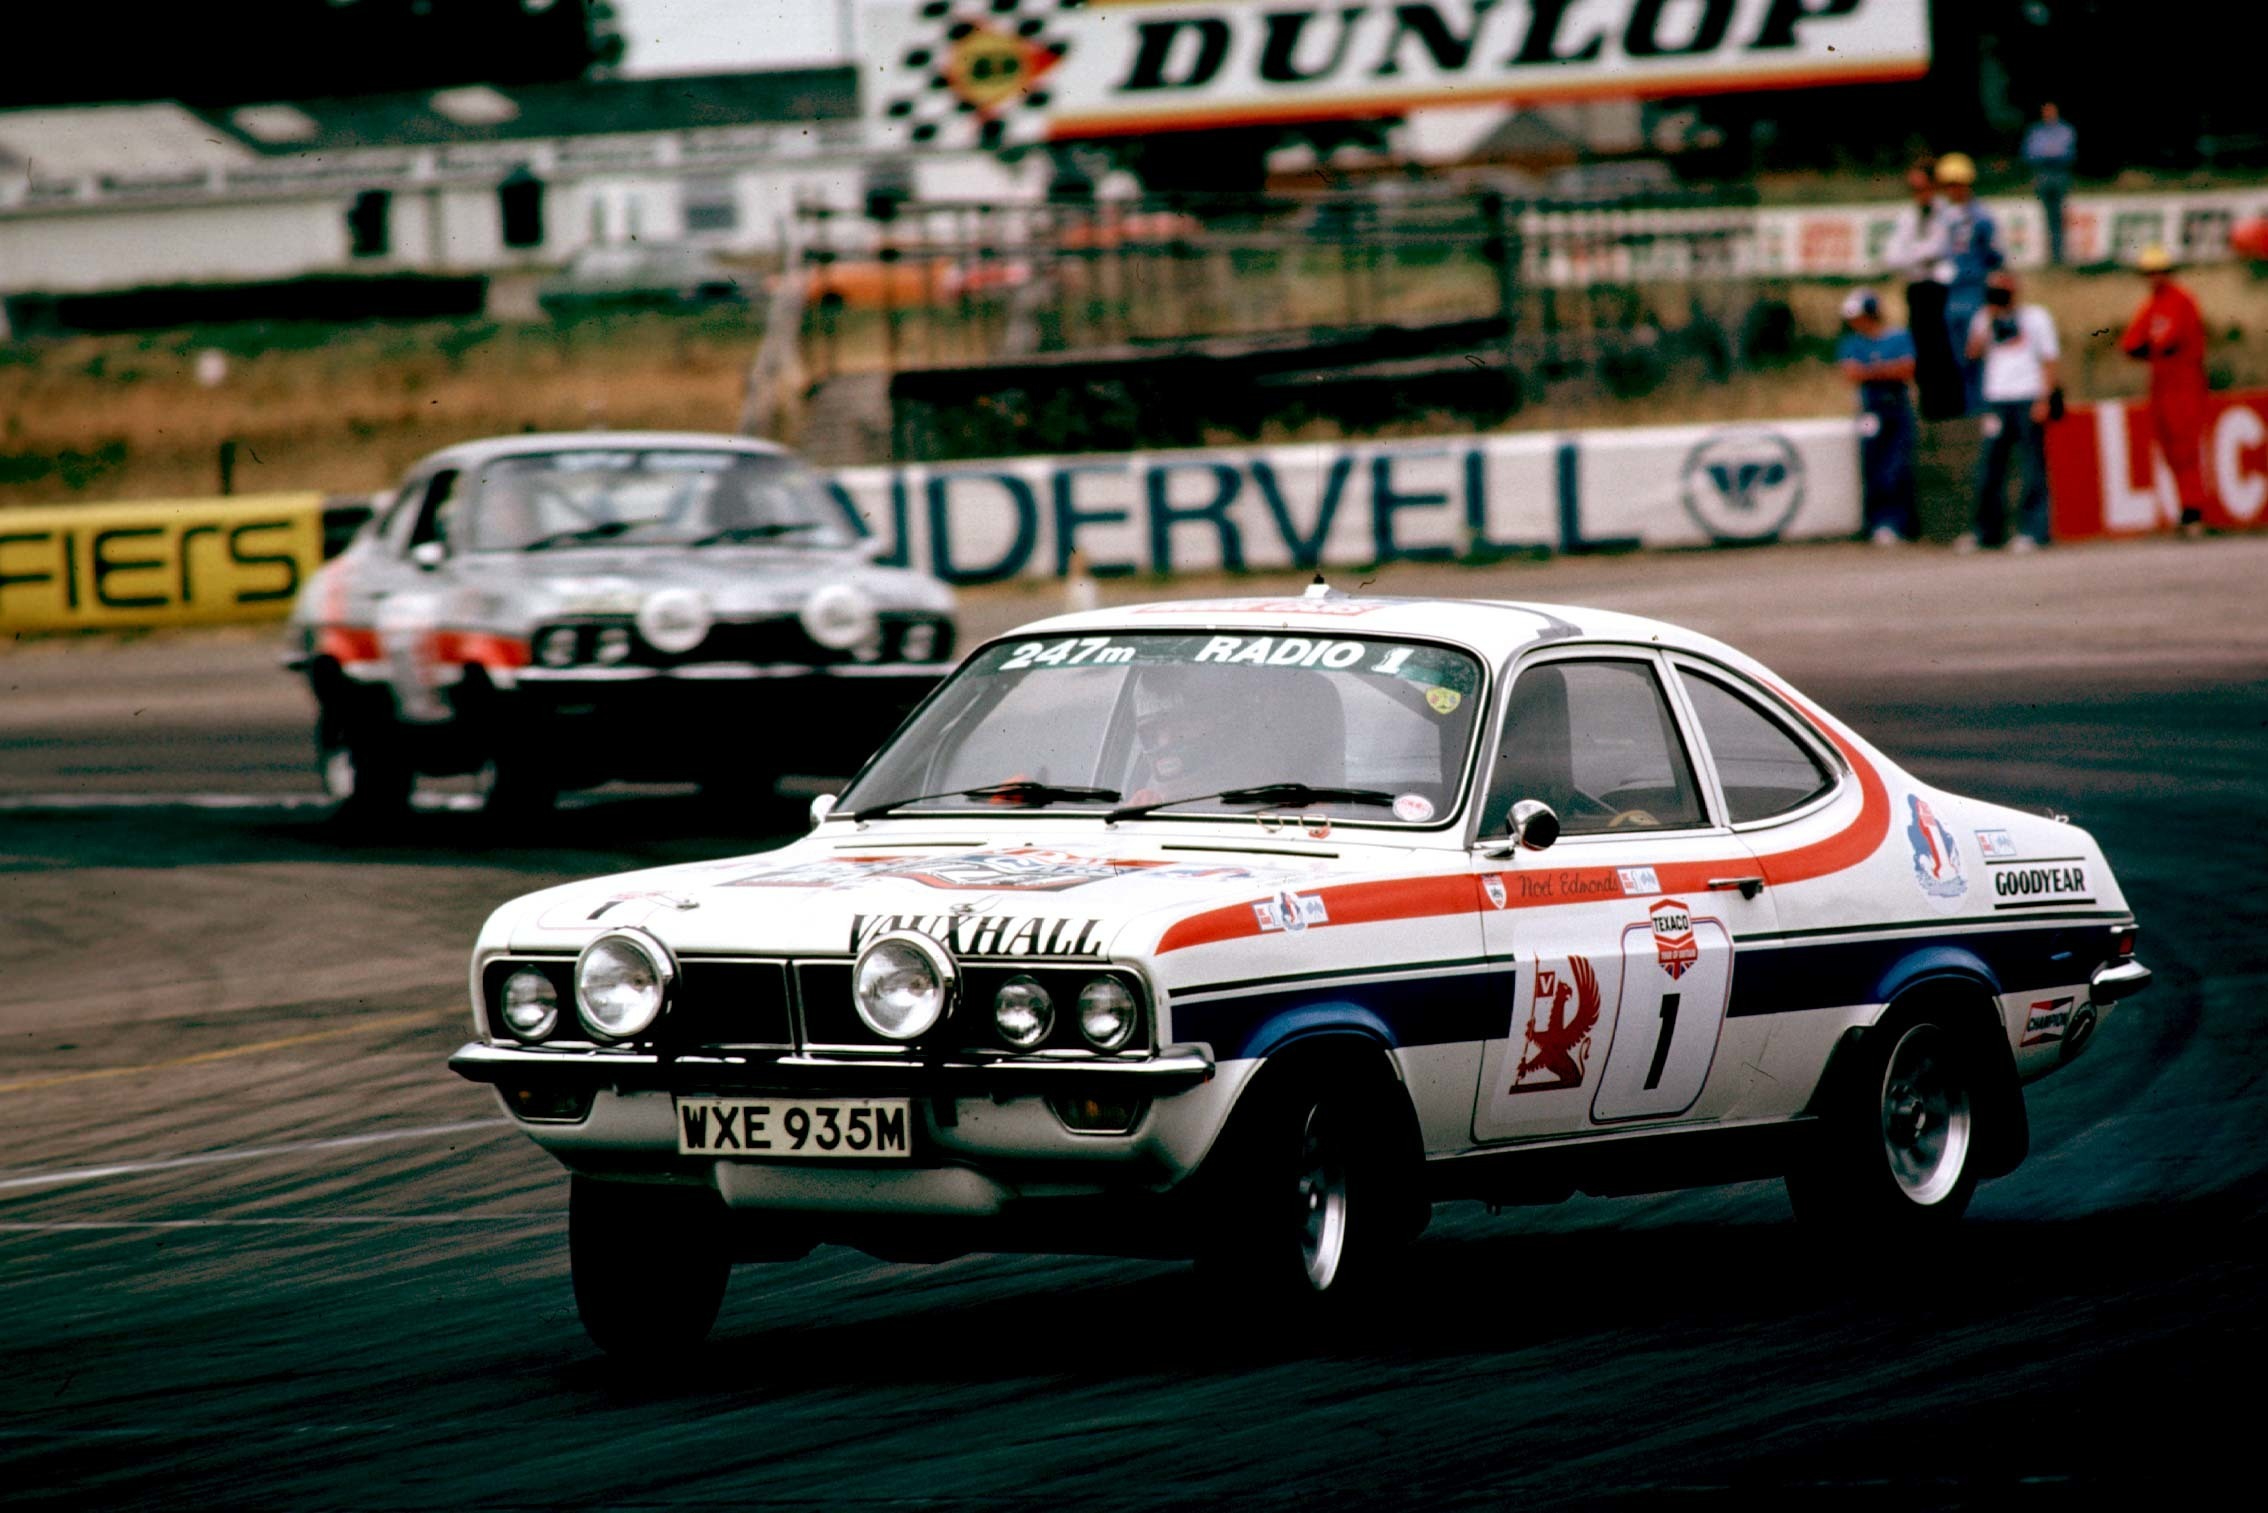 James Hunt (Vauxhall) which he shared with Noel Edmonds in the 1976 Tour of Britain.